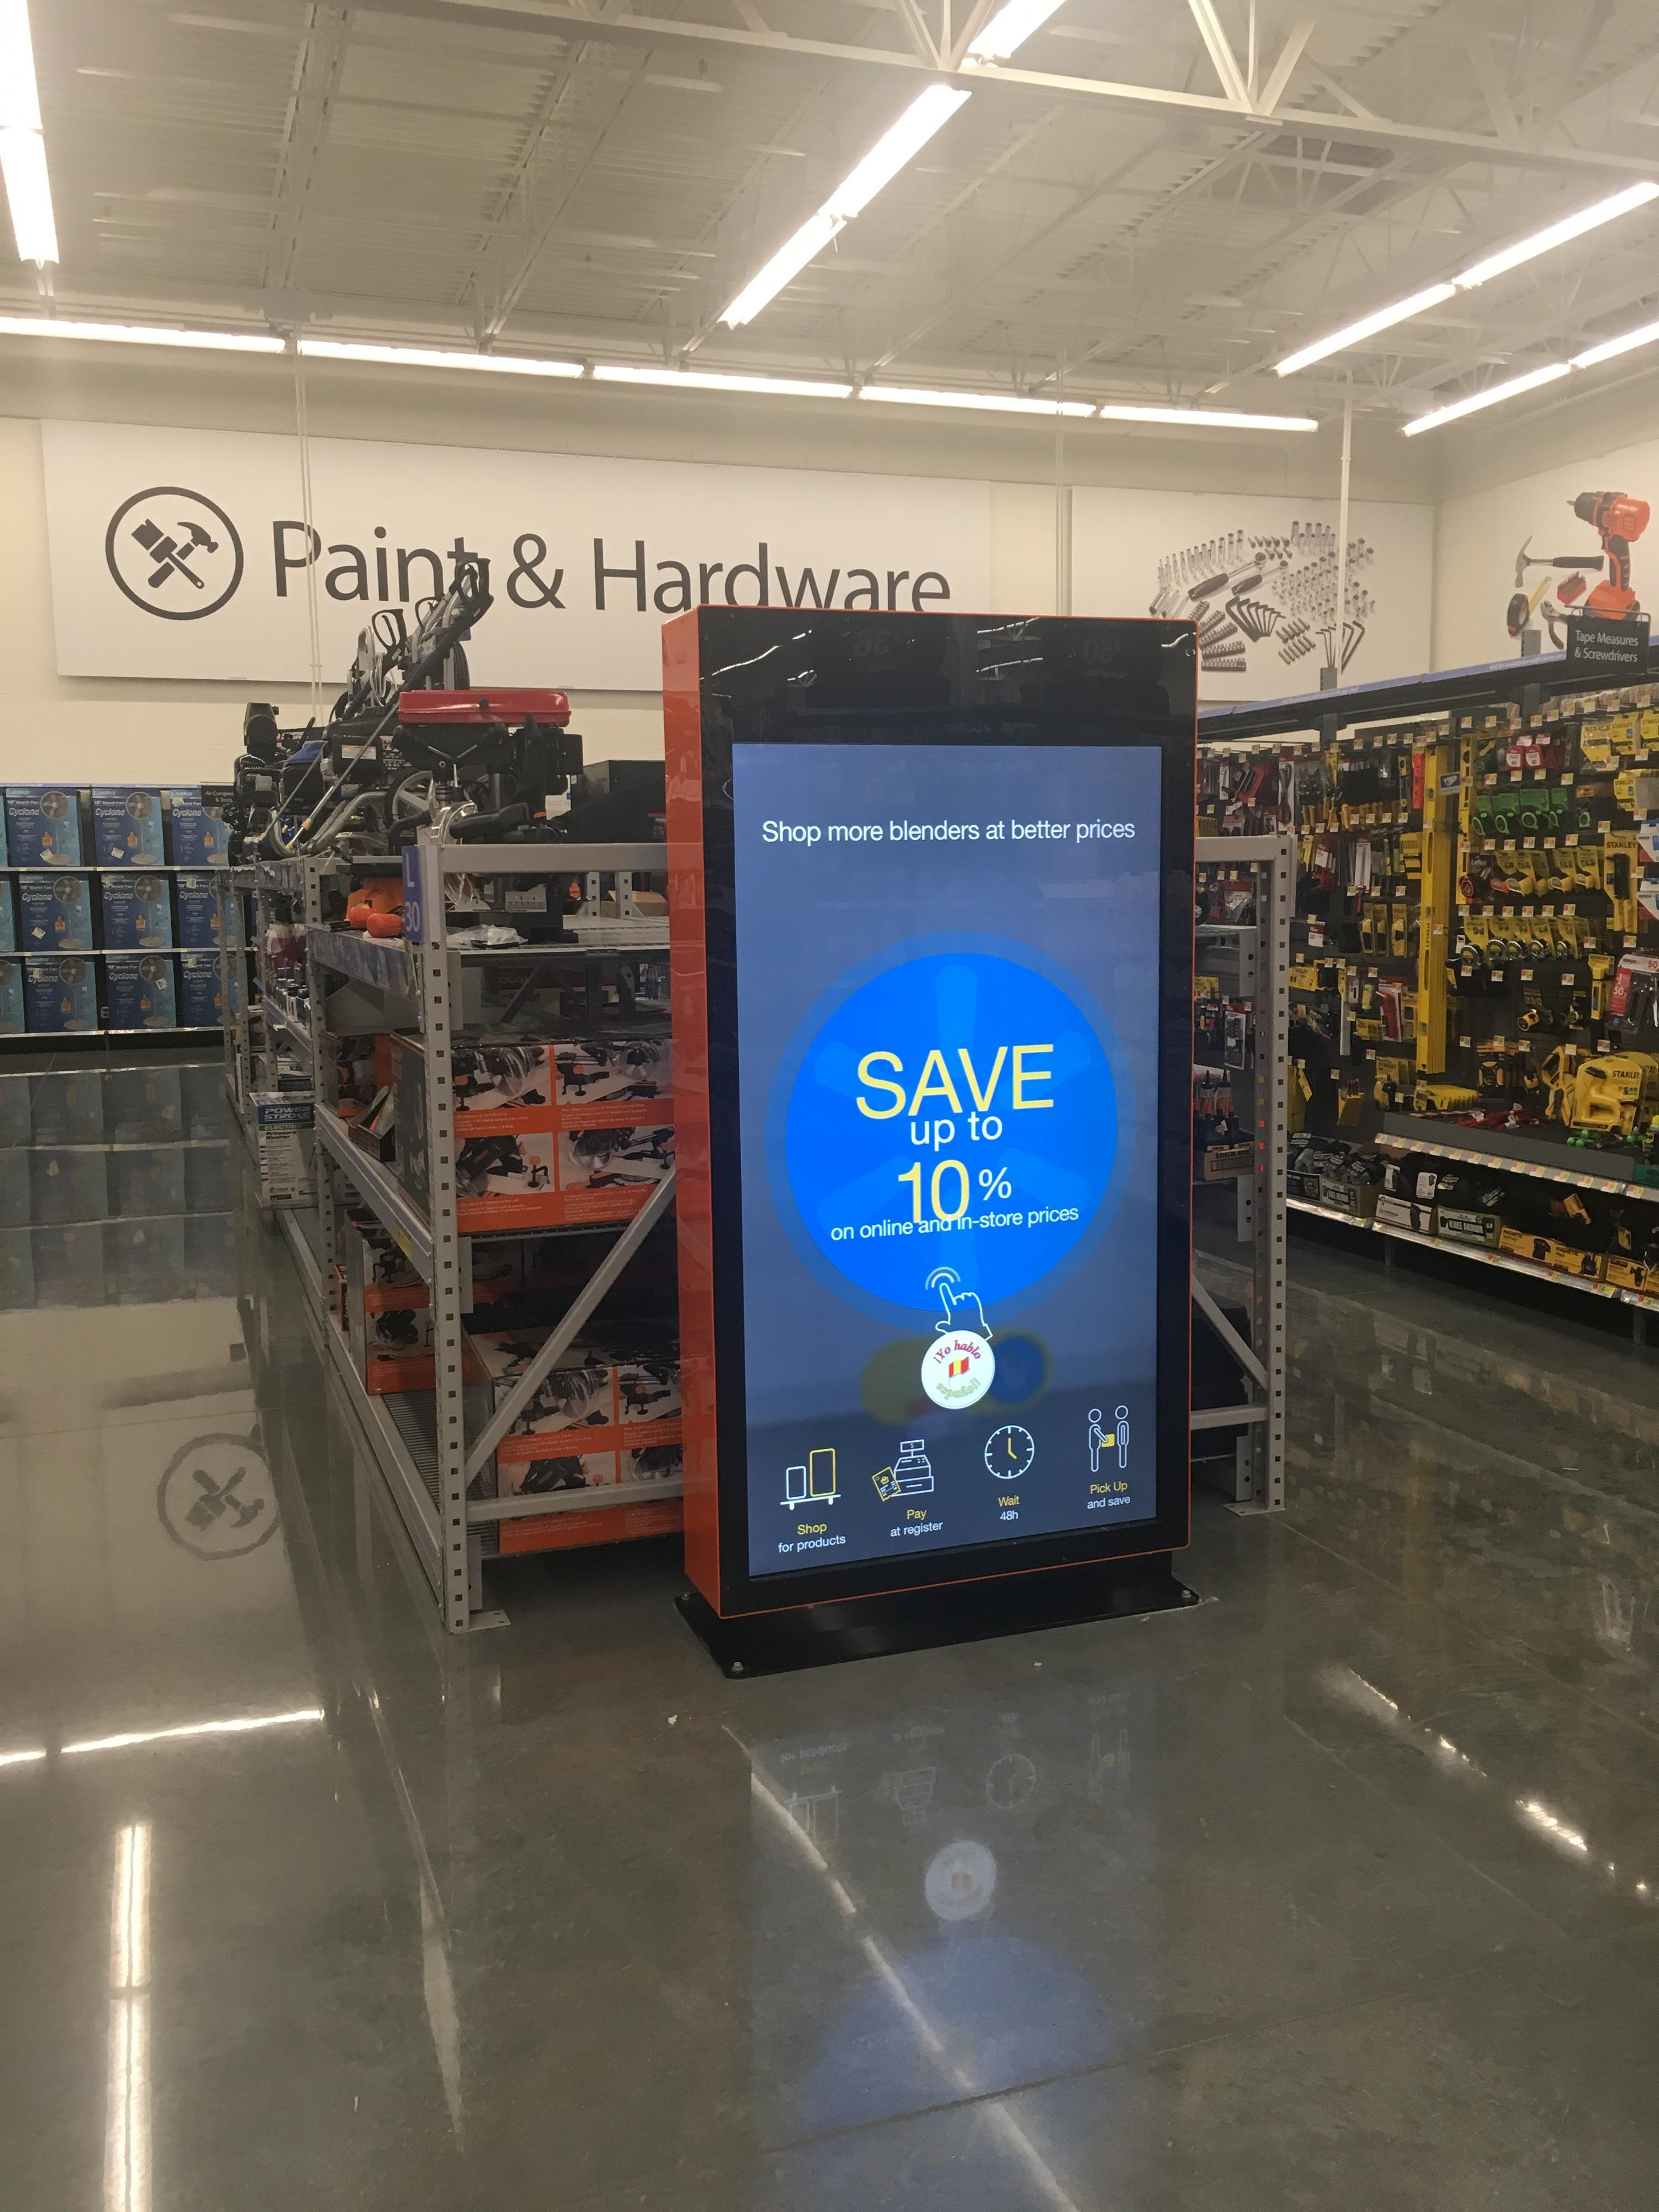 WestRock Advancded Digital Retail Displays at Walmart